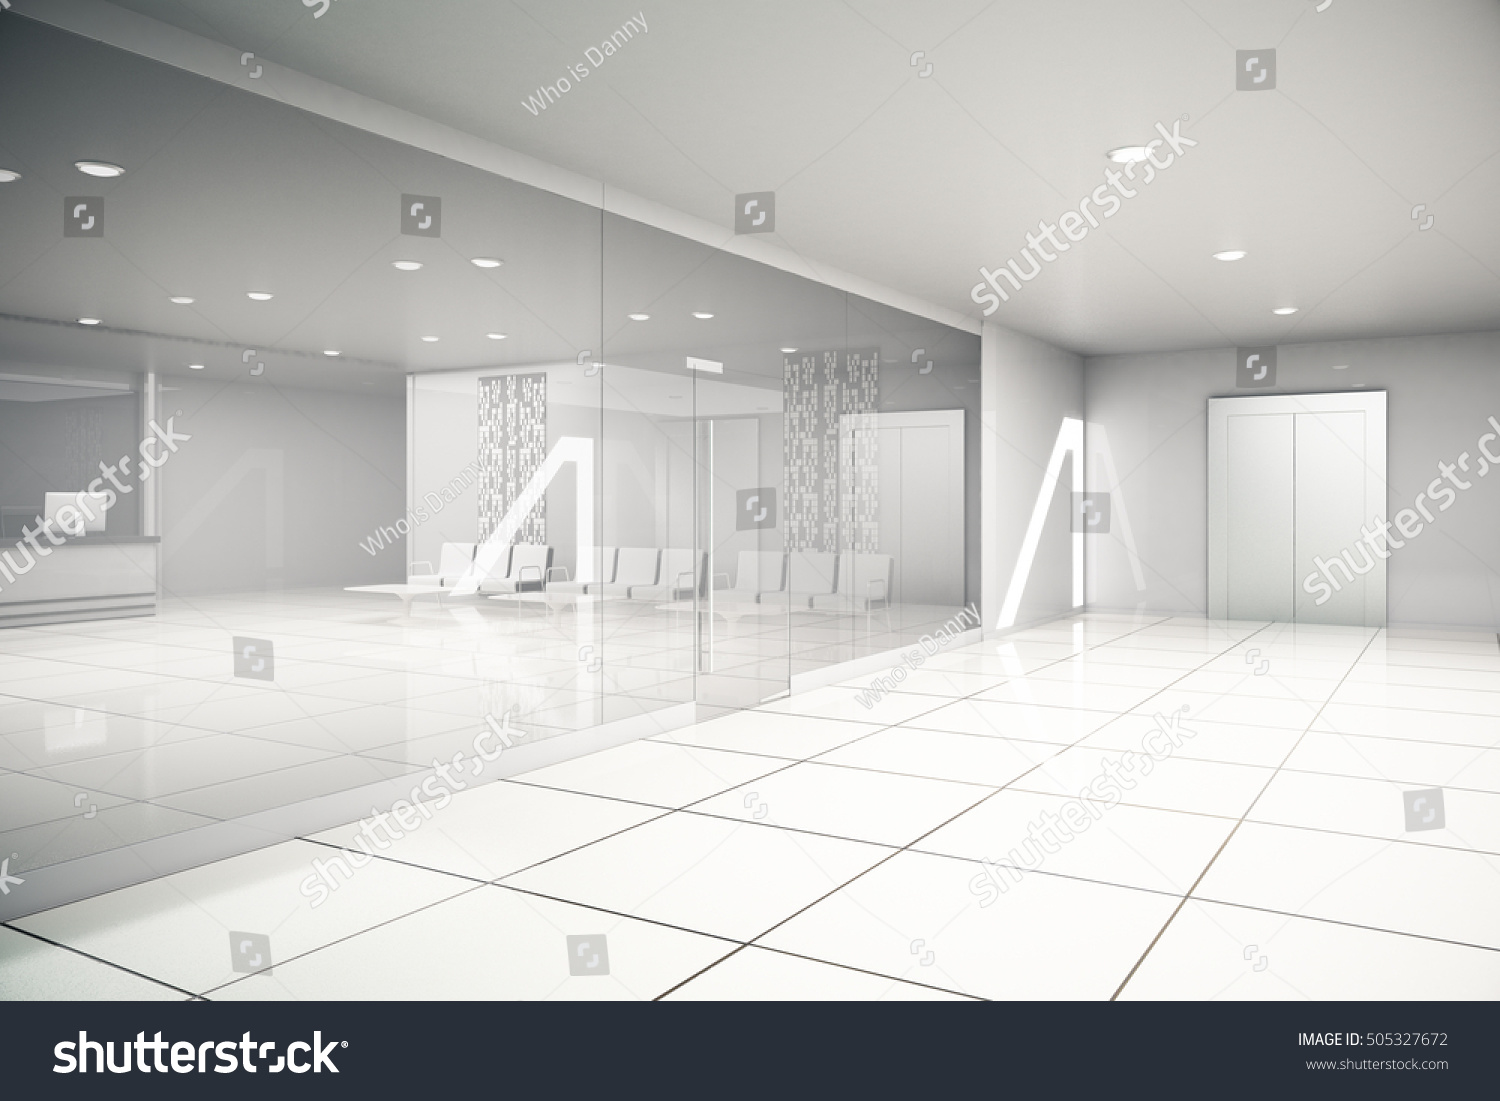 Luxurious light business interior reception waiting stock luxurious light business interior with reception waiting area glass doors tile floors and dailygadgetfo Images